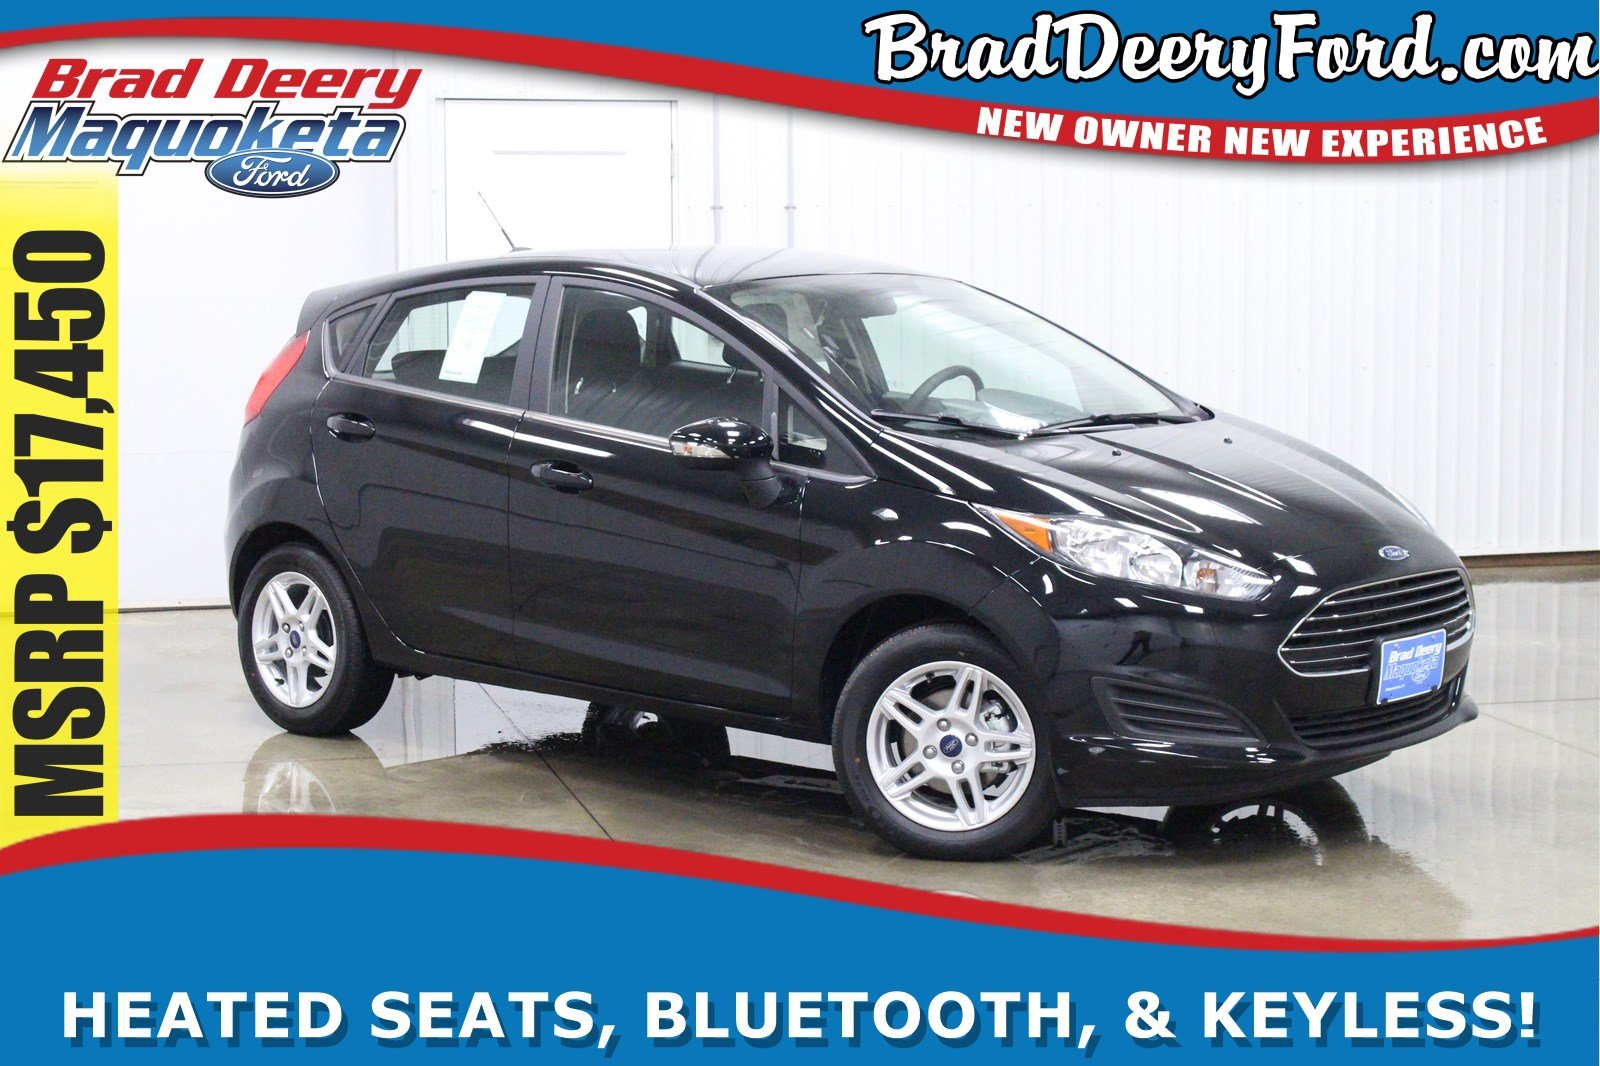 2017 Ford Fiesta SE w/ H. Seats & Bluetooth Hatchback